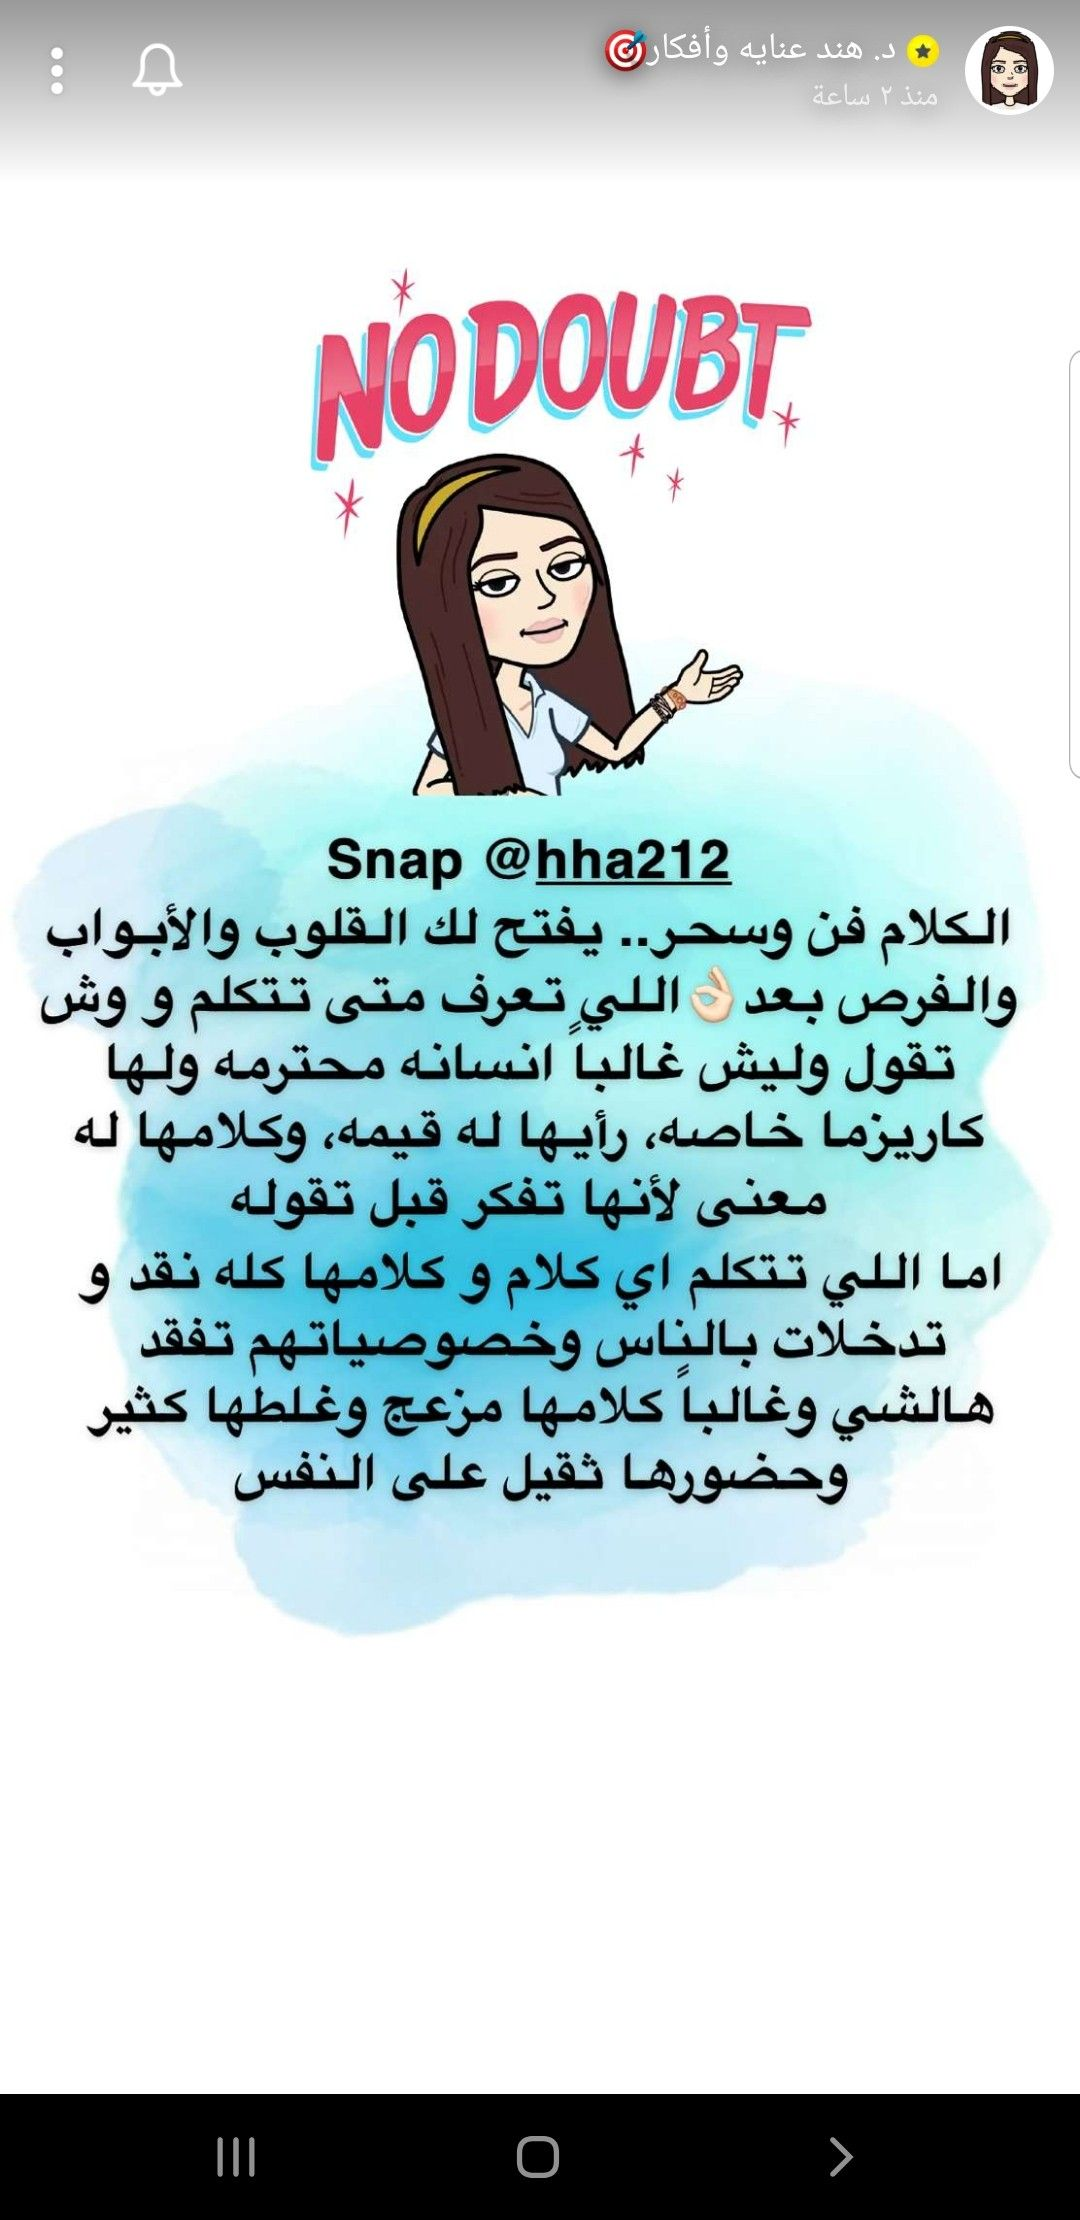 Pin By Alwarda Zhrany On نصائح In 2020 Acle Uig Life Rules